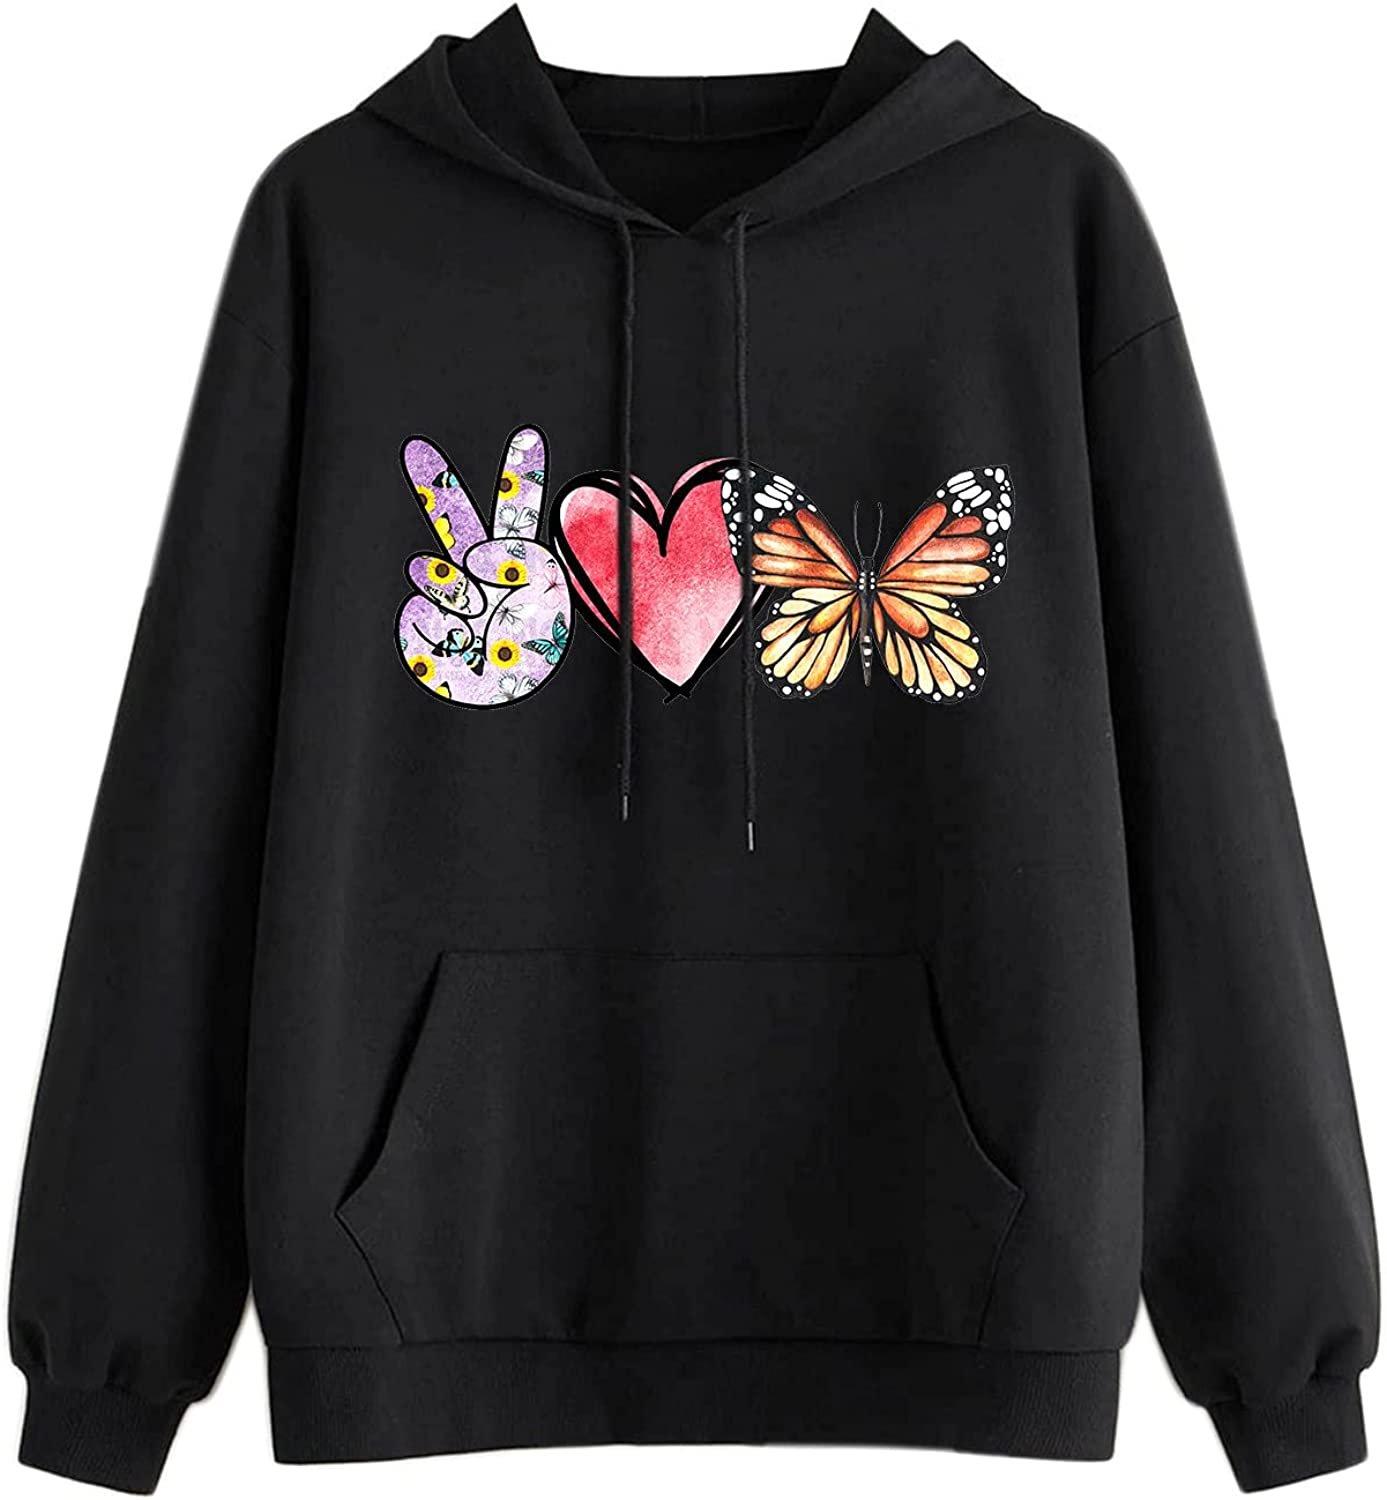 Sunflower Graphic Sweatshirts for Women Fashion Crewneck Loose Fit Casual Long Sleeve Cute Pullover Sweaters